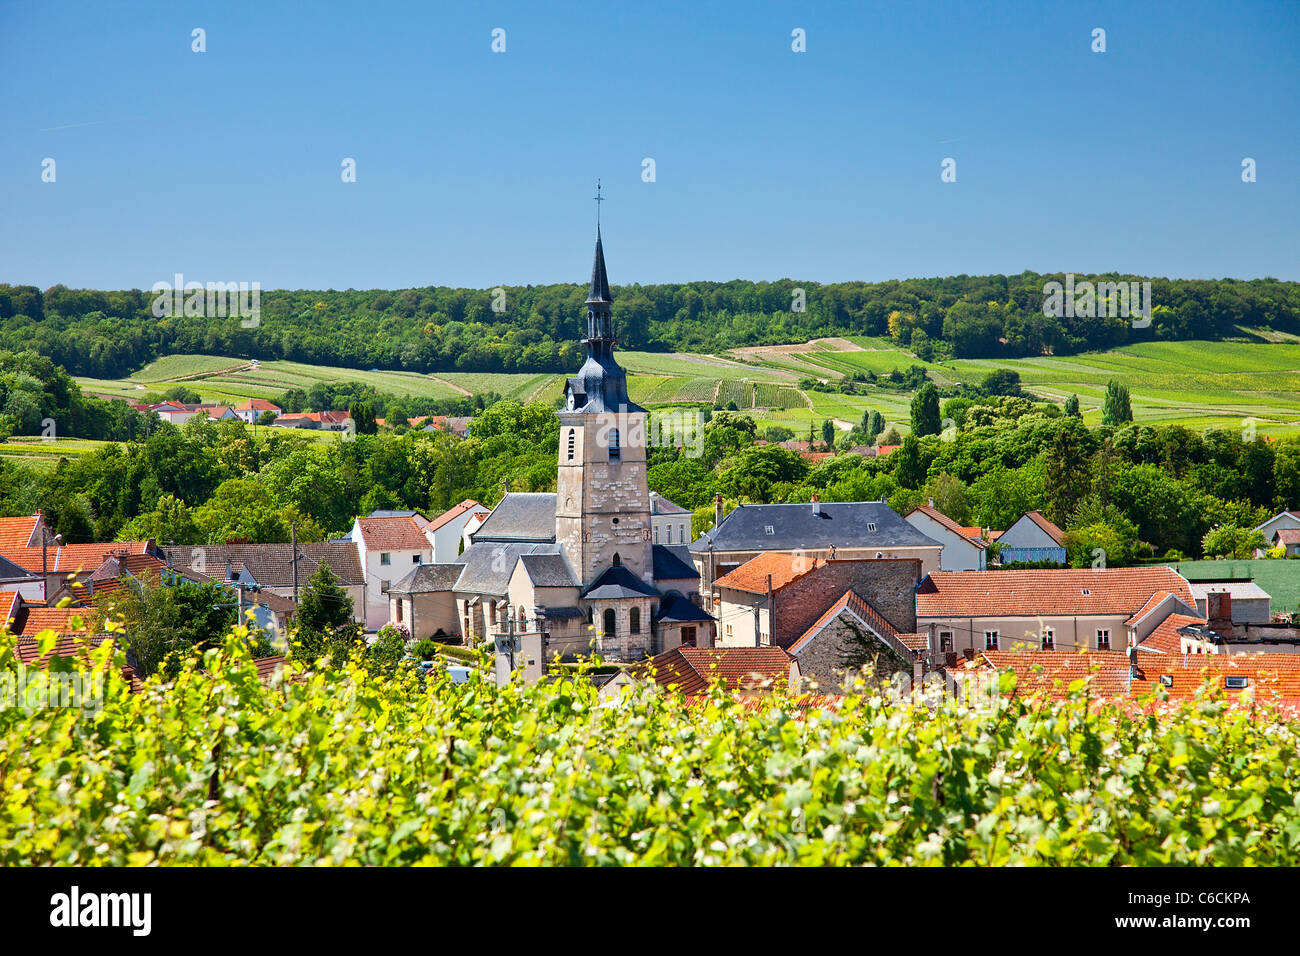 France, Marne, Sermiers, a village close to Reims associated with Champagne wine Stock Photo